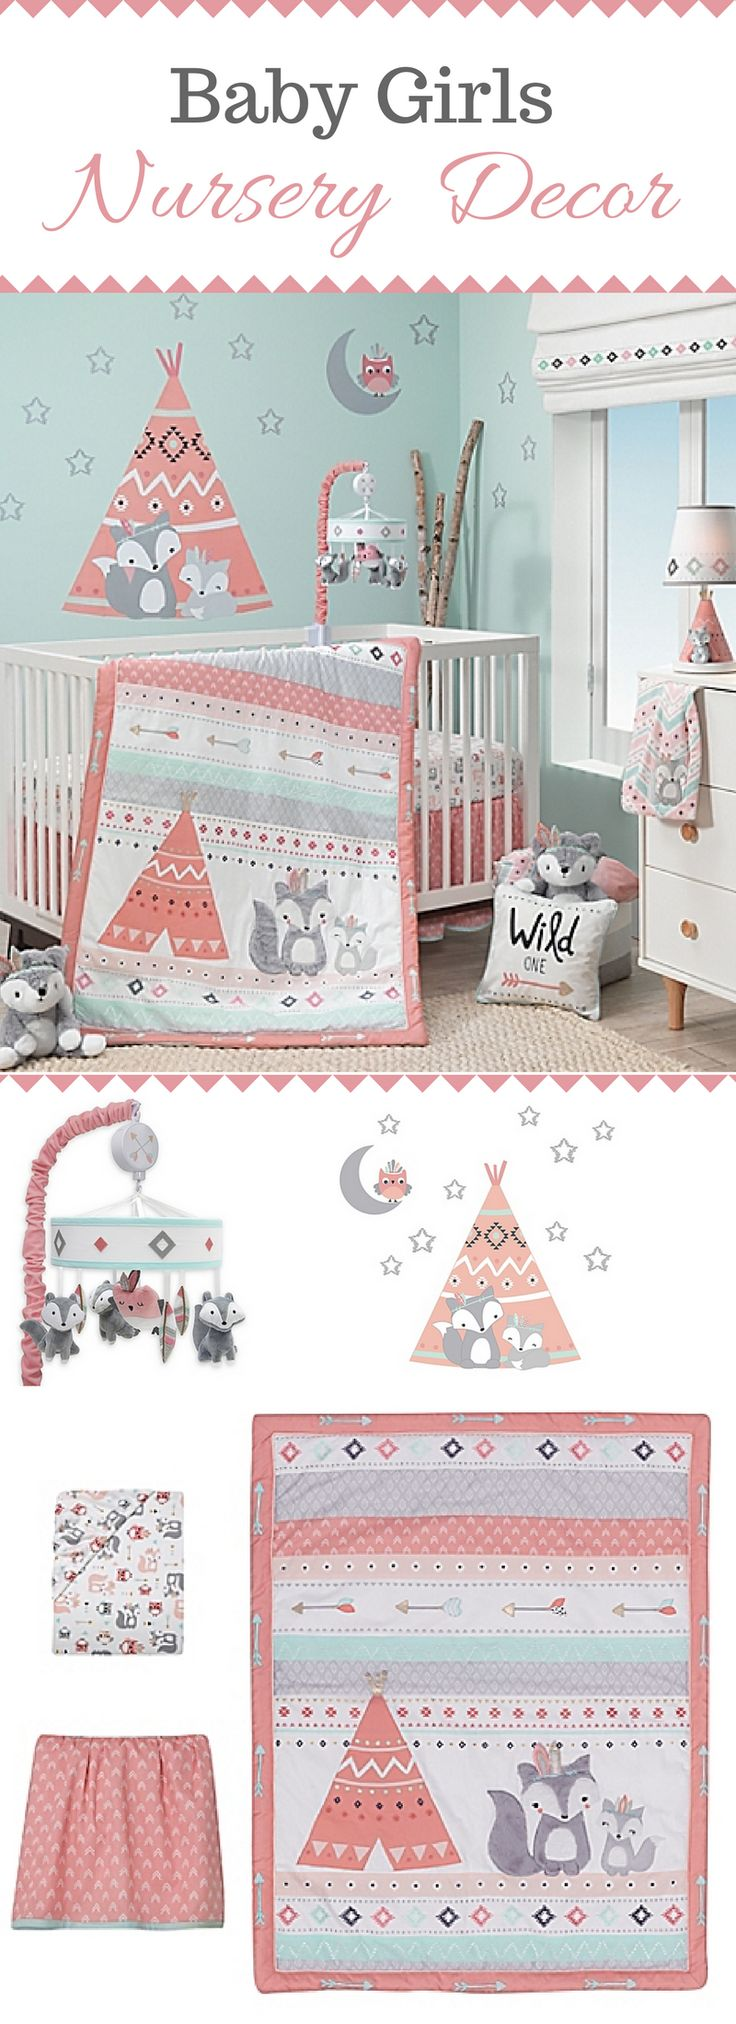 Decorate your baby girls nursery  with the Lambs & Ivy Little Spirit Crib Bedding Collection. This southwestern-inspired collection is adorned with baby foxes, teepees, arrows, and triangles for an engaging scene. #babygirls #nursery #ad